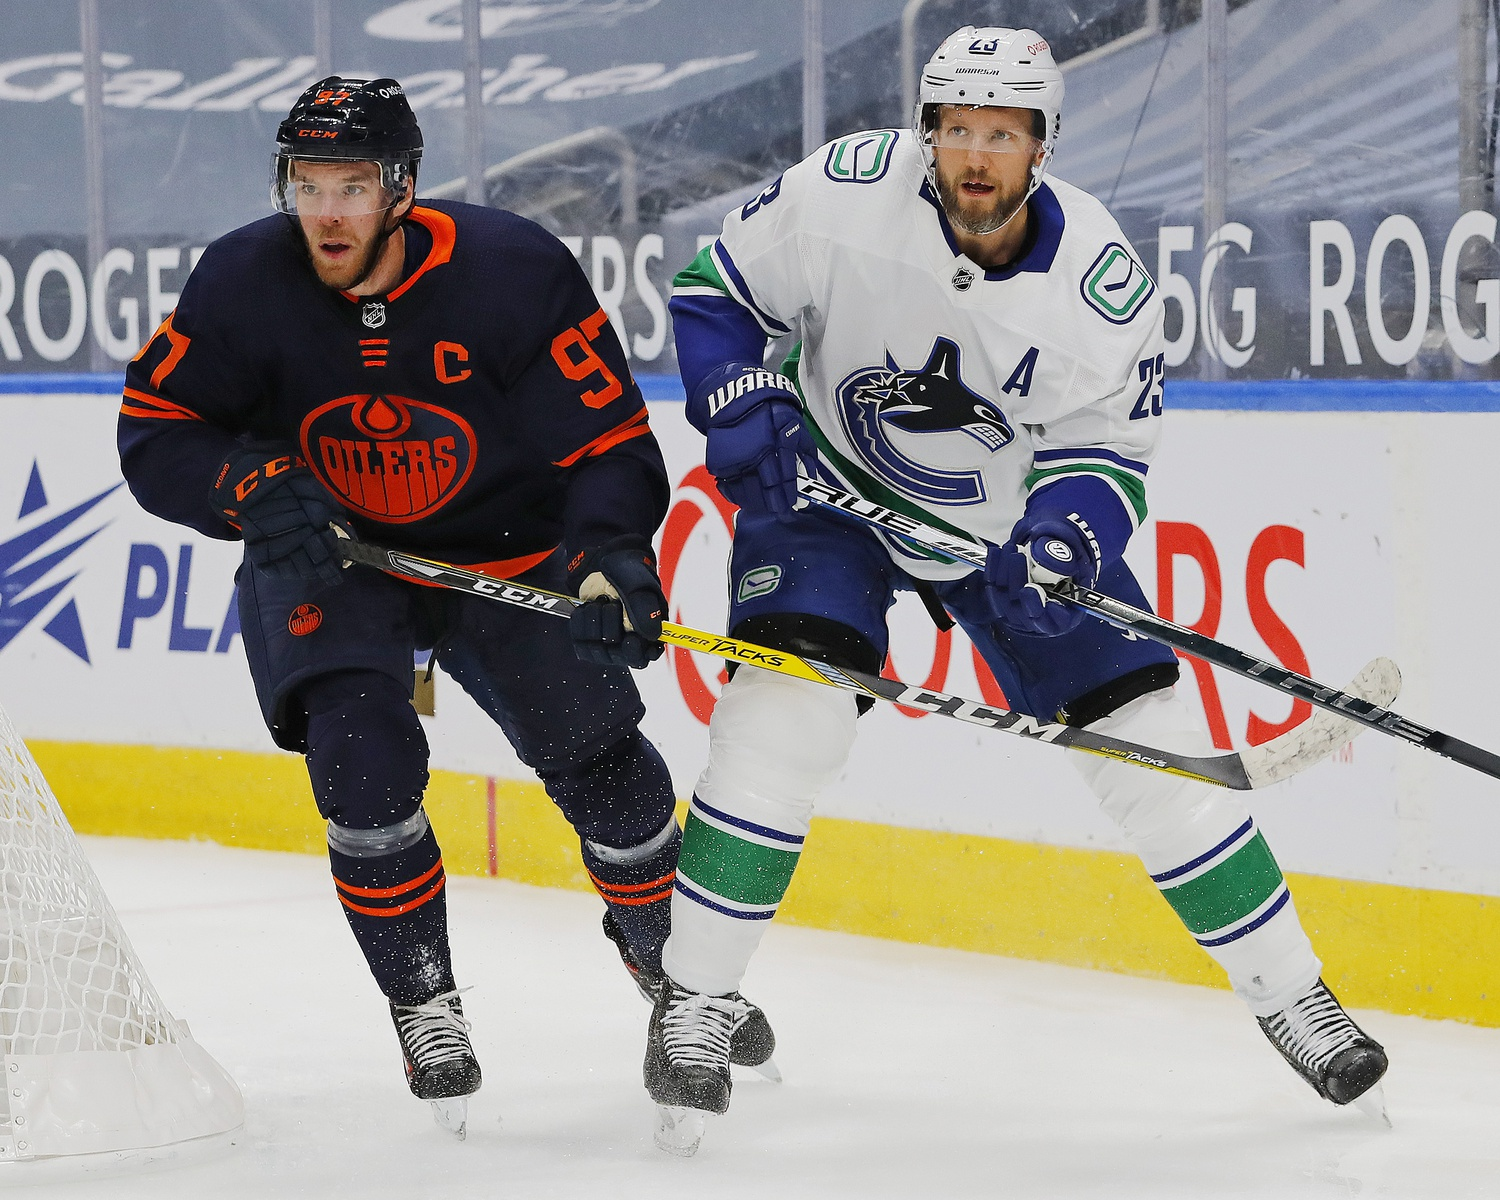 Oilers Gameday: @ Canucks